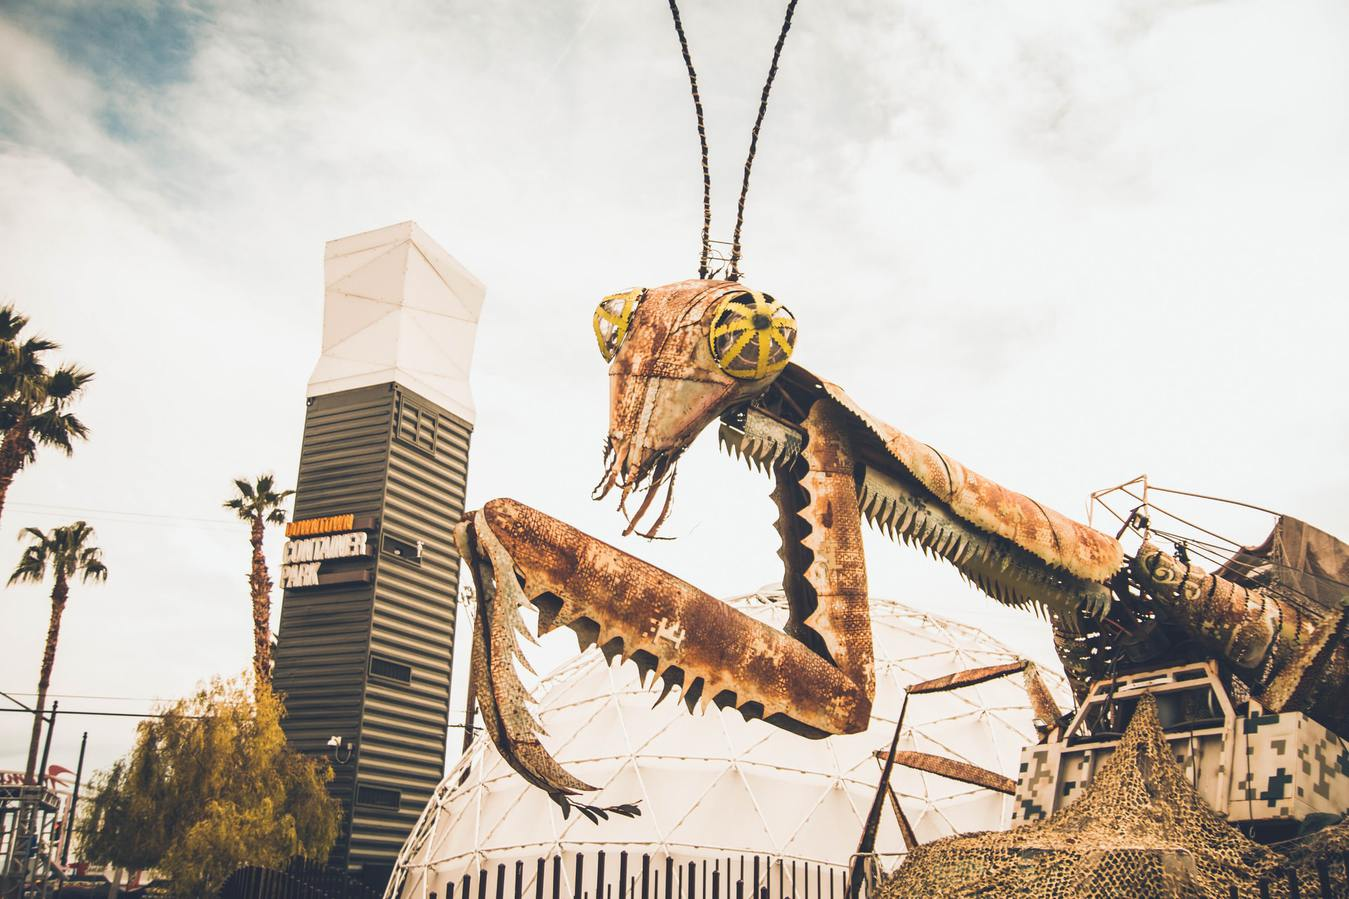 Giant Bug Sculpture From Metal